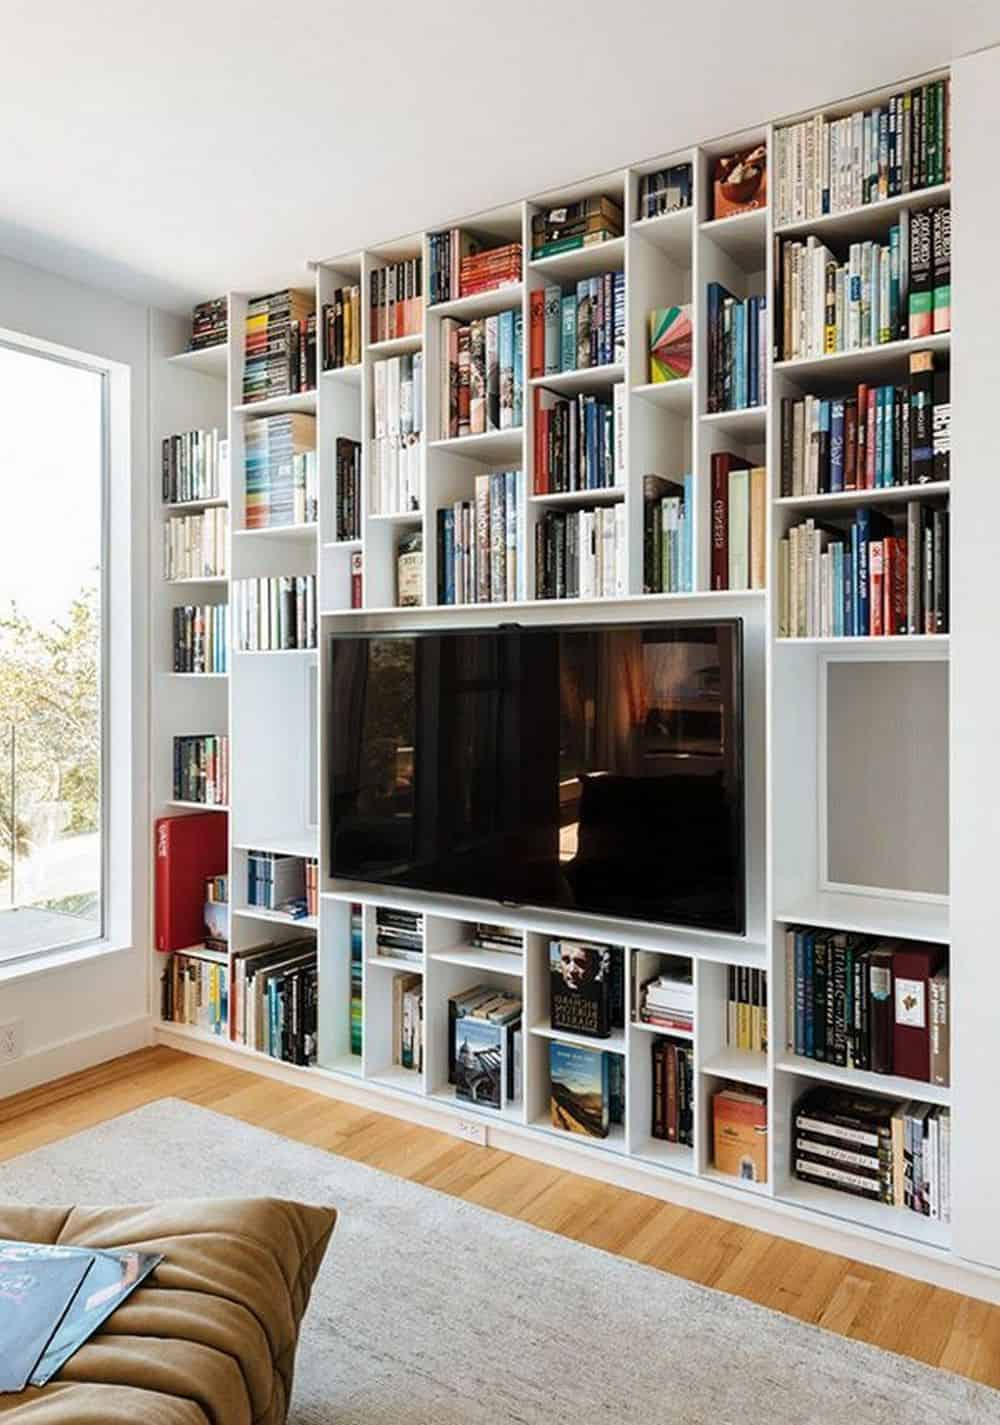 Top 6 Ideas To Decorate Your TV Wall - Add Up A Library Set-Up